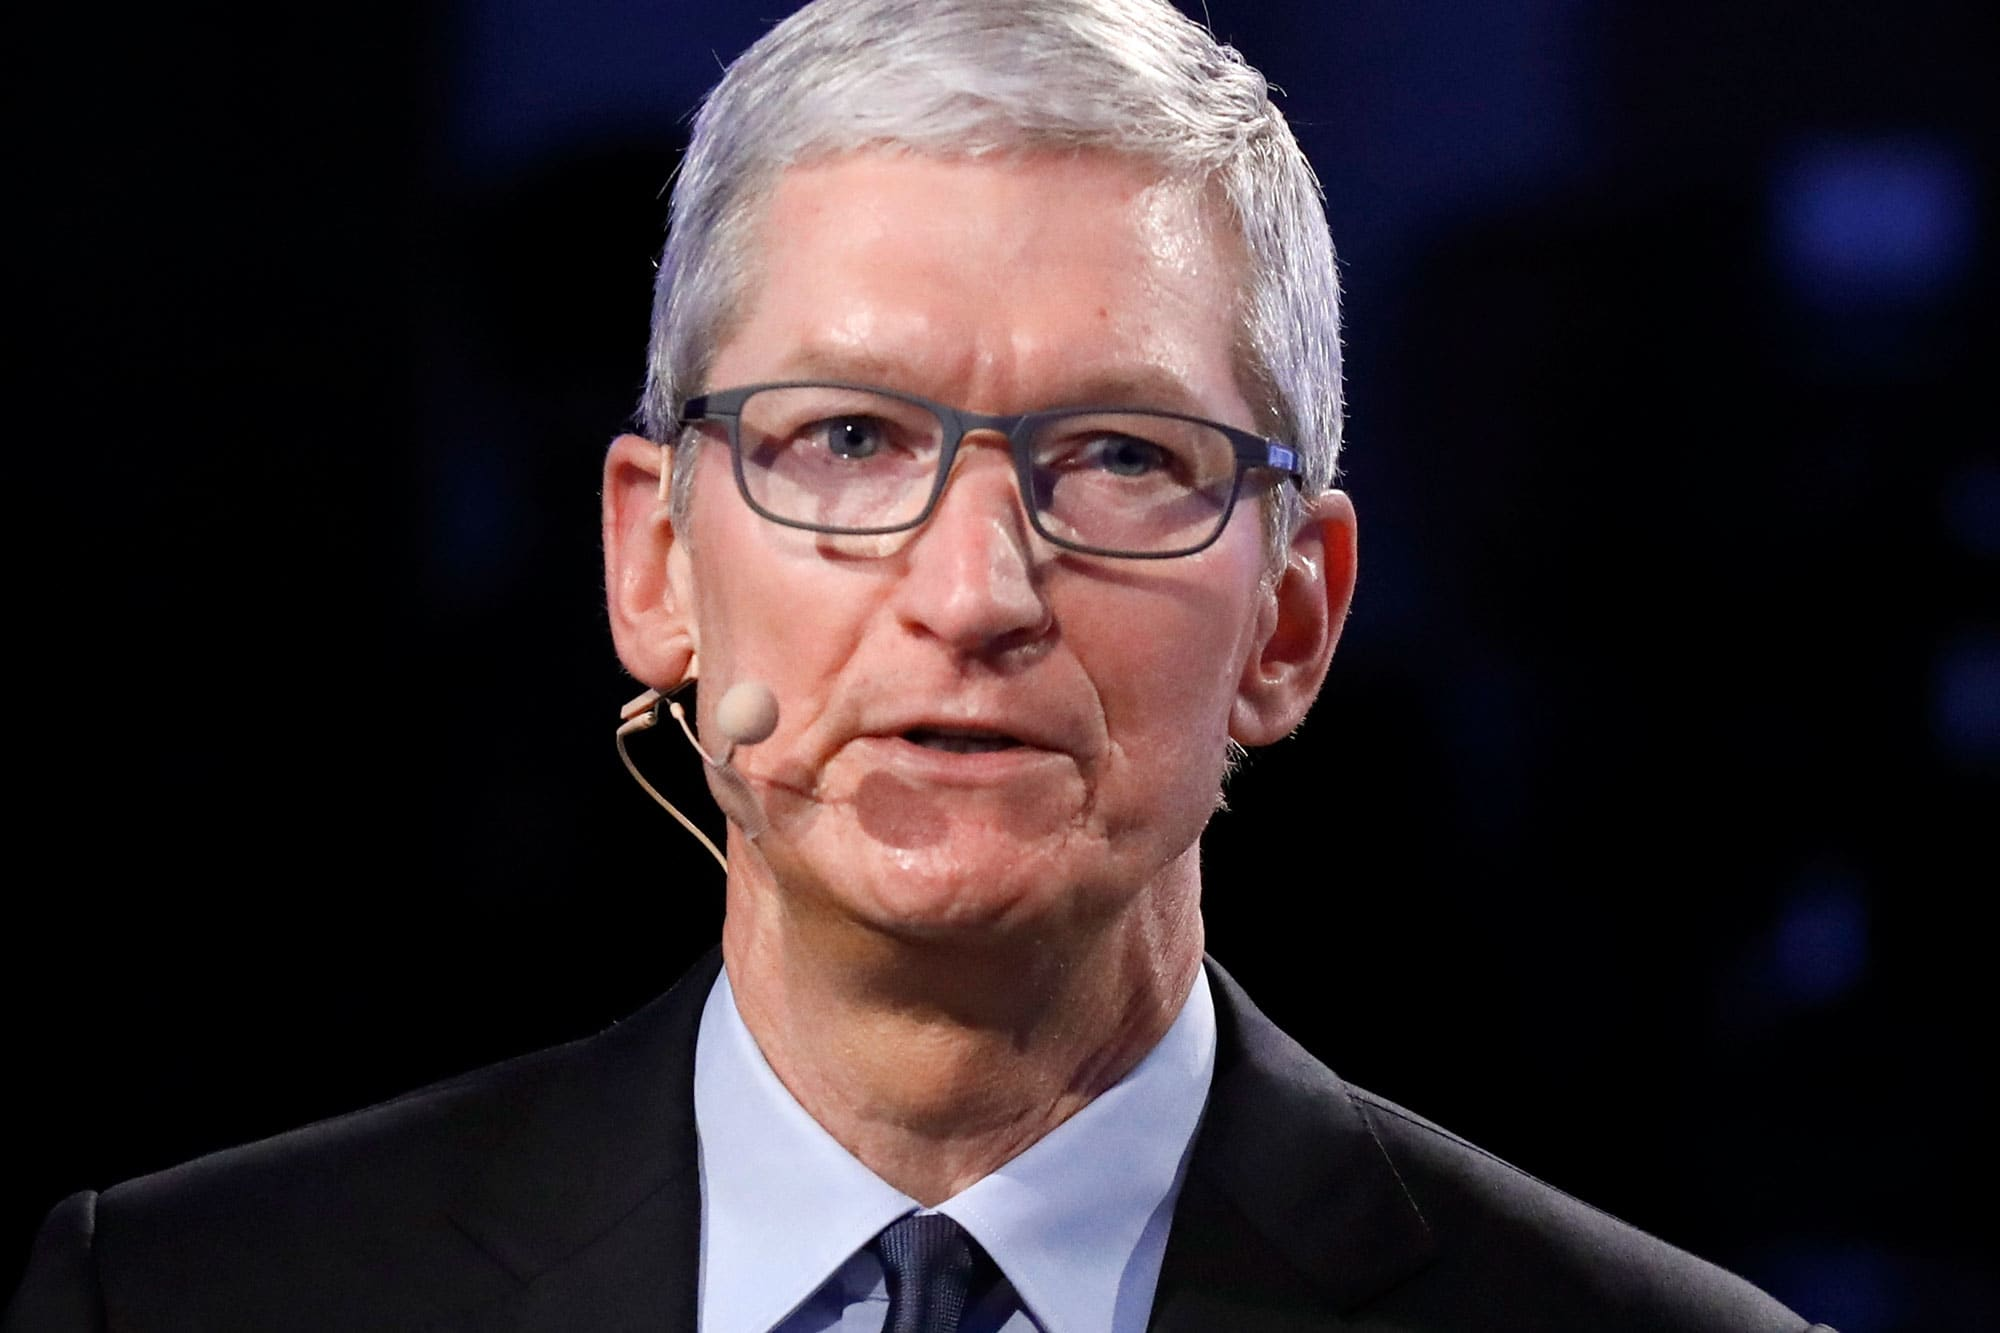 Here's what every major analyst expects from Apple's earnings report